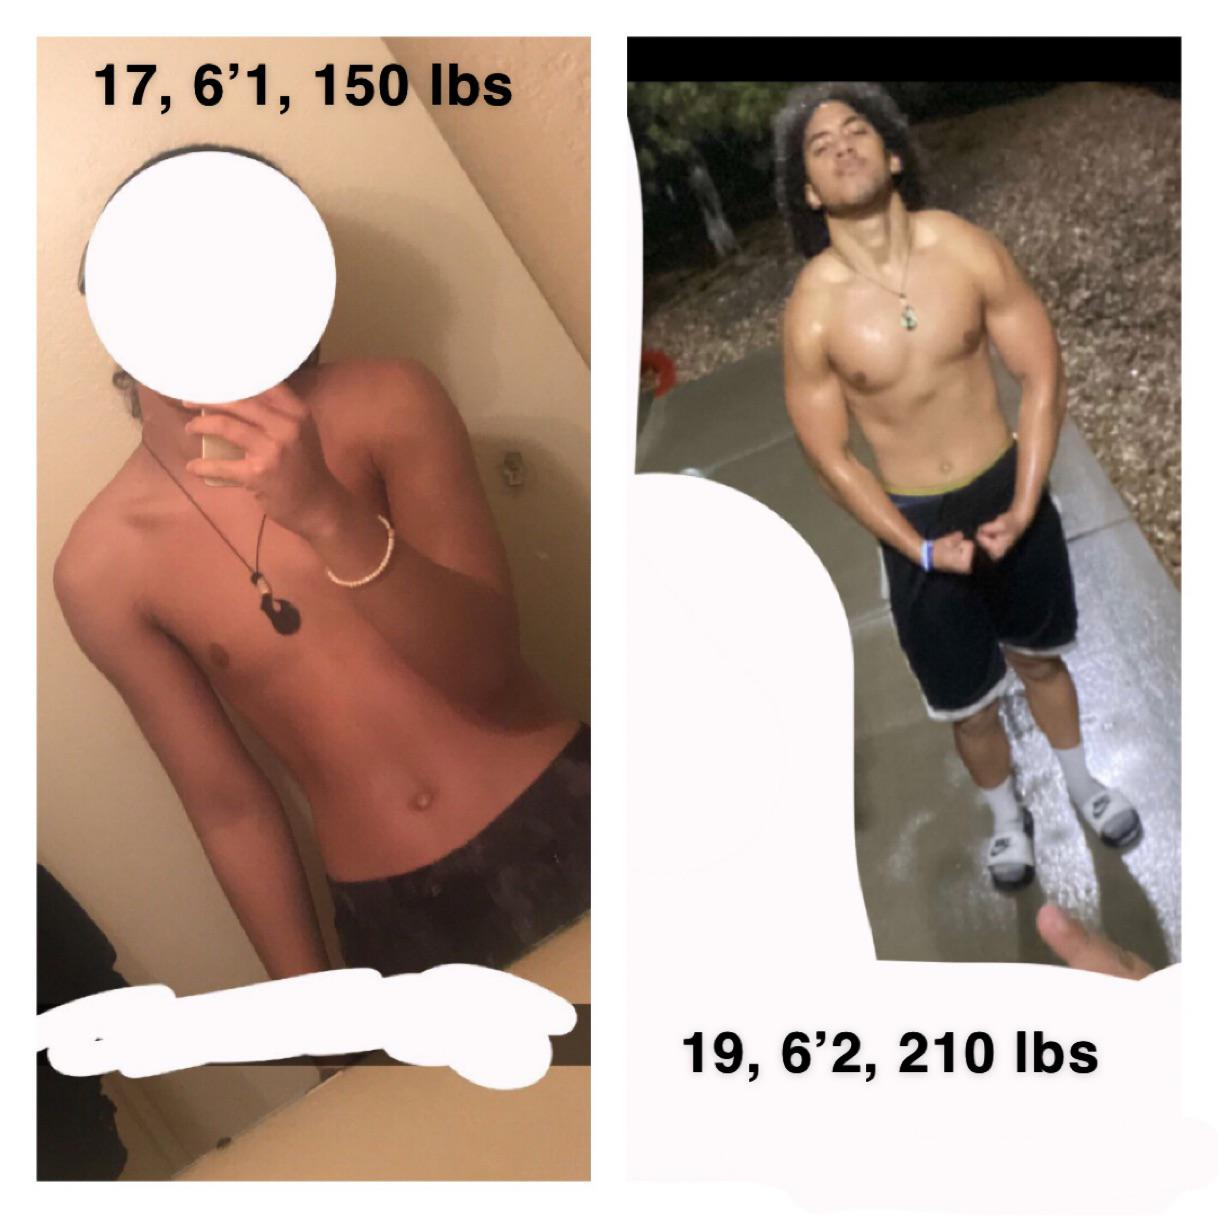 6 foot 2 Male Before and After 60 lbs Weight Gain 150 lbs to 210 lbs